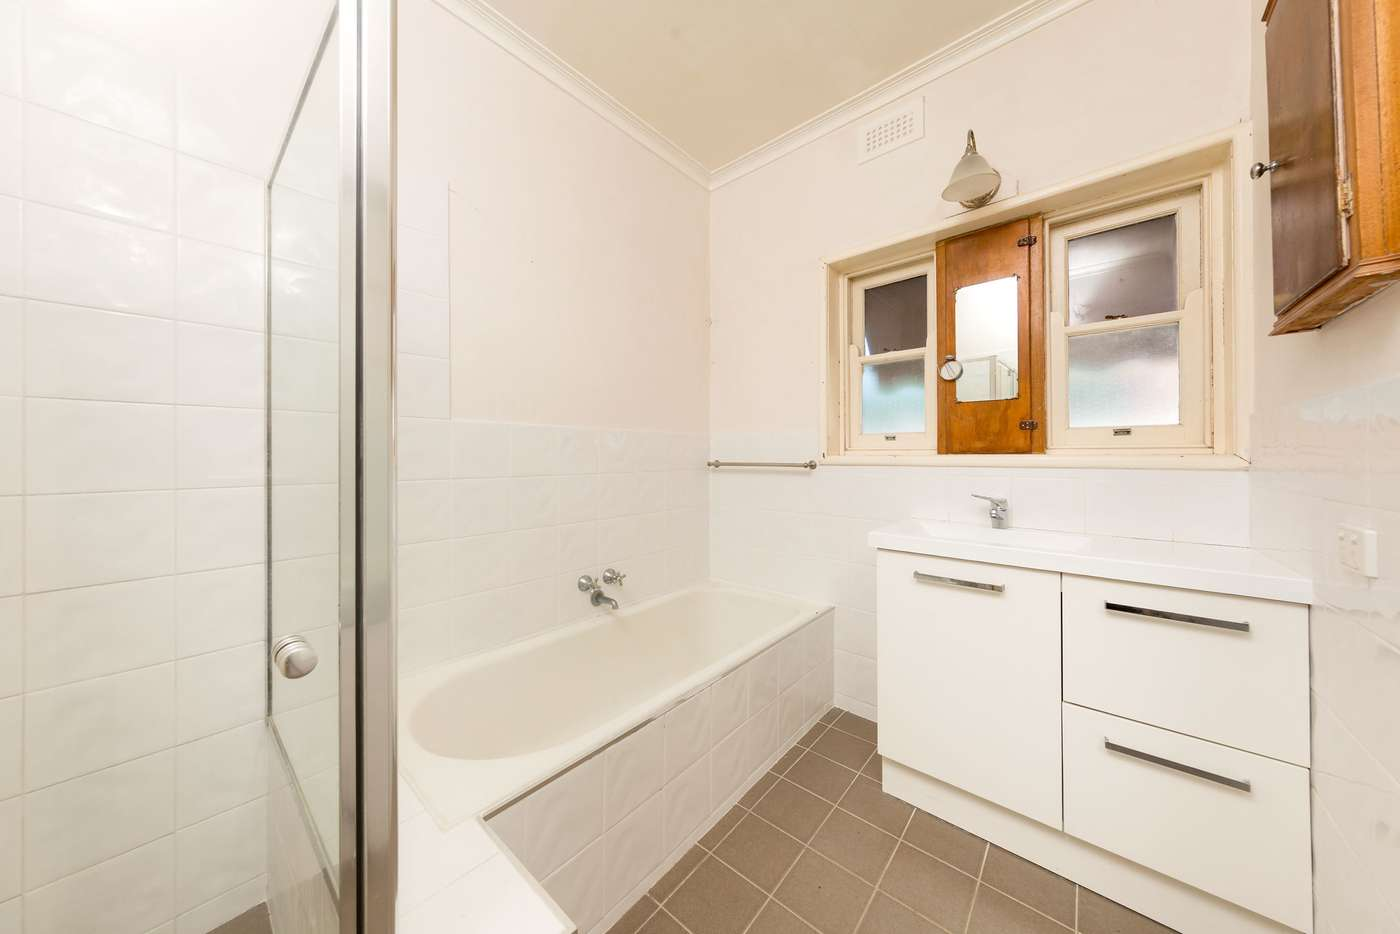 Seventh view of Homely house listing, 96 Lawrence Street, Wodonga VIC 3690